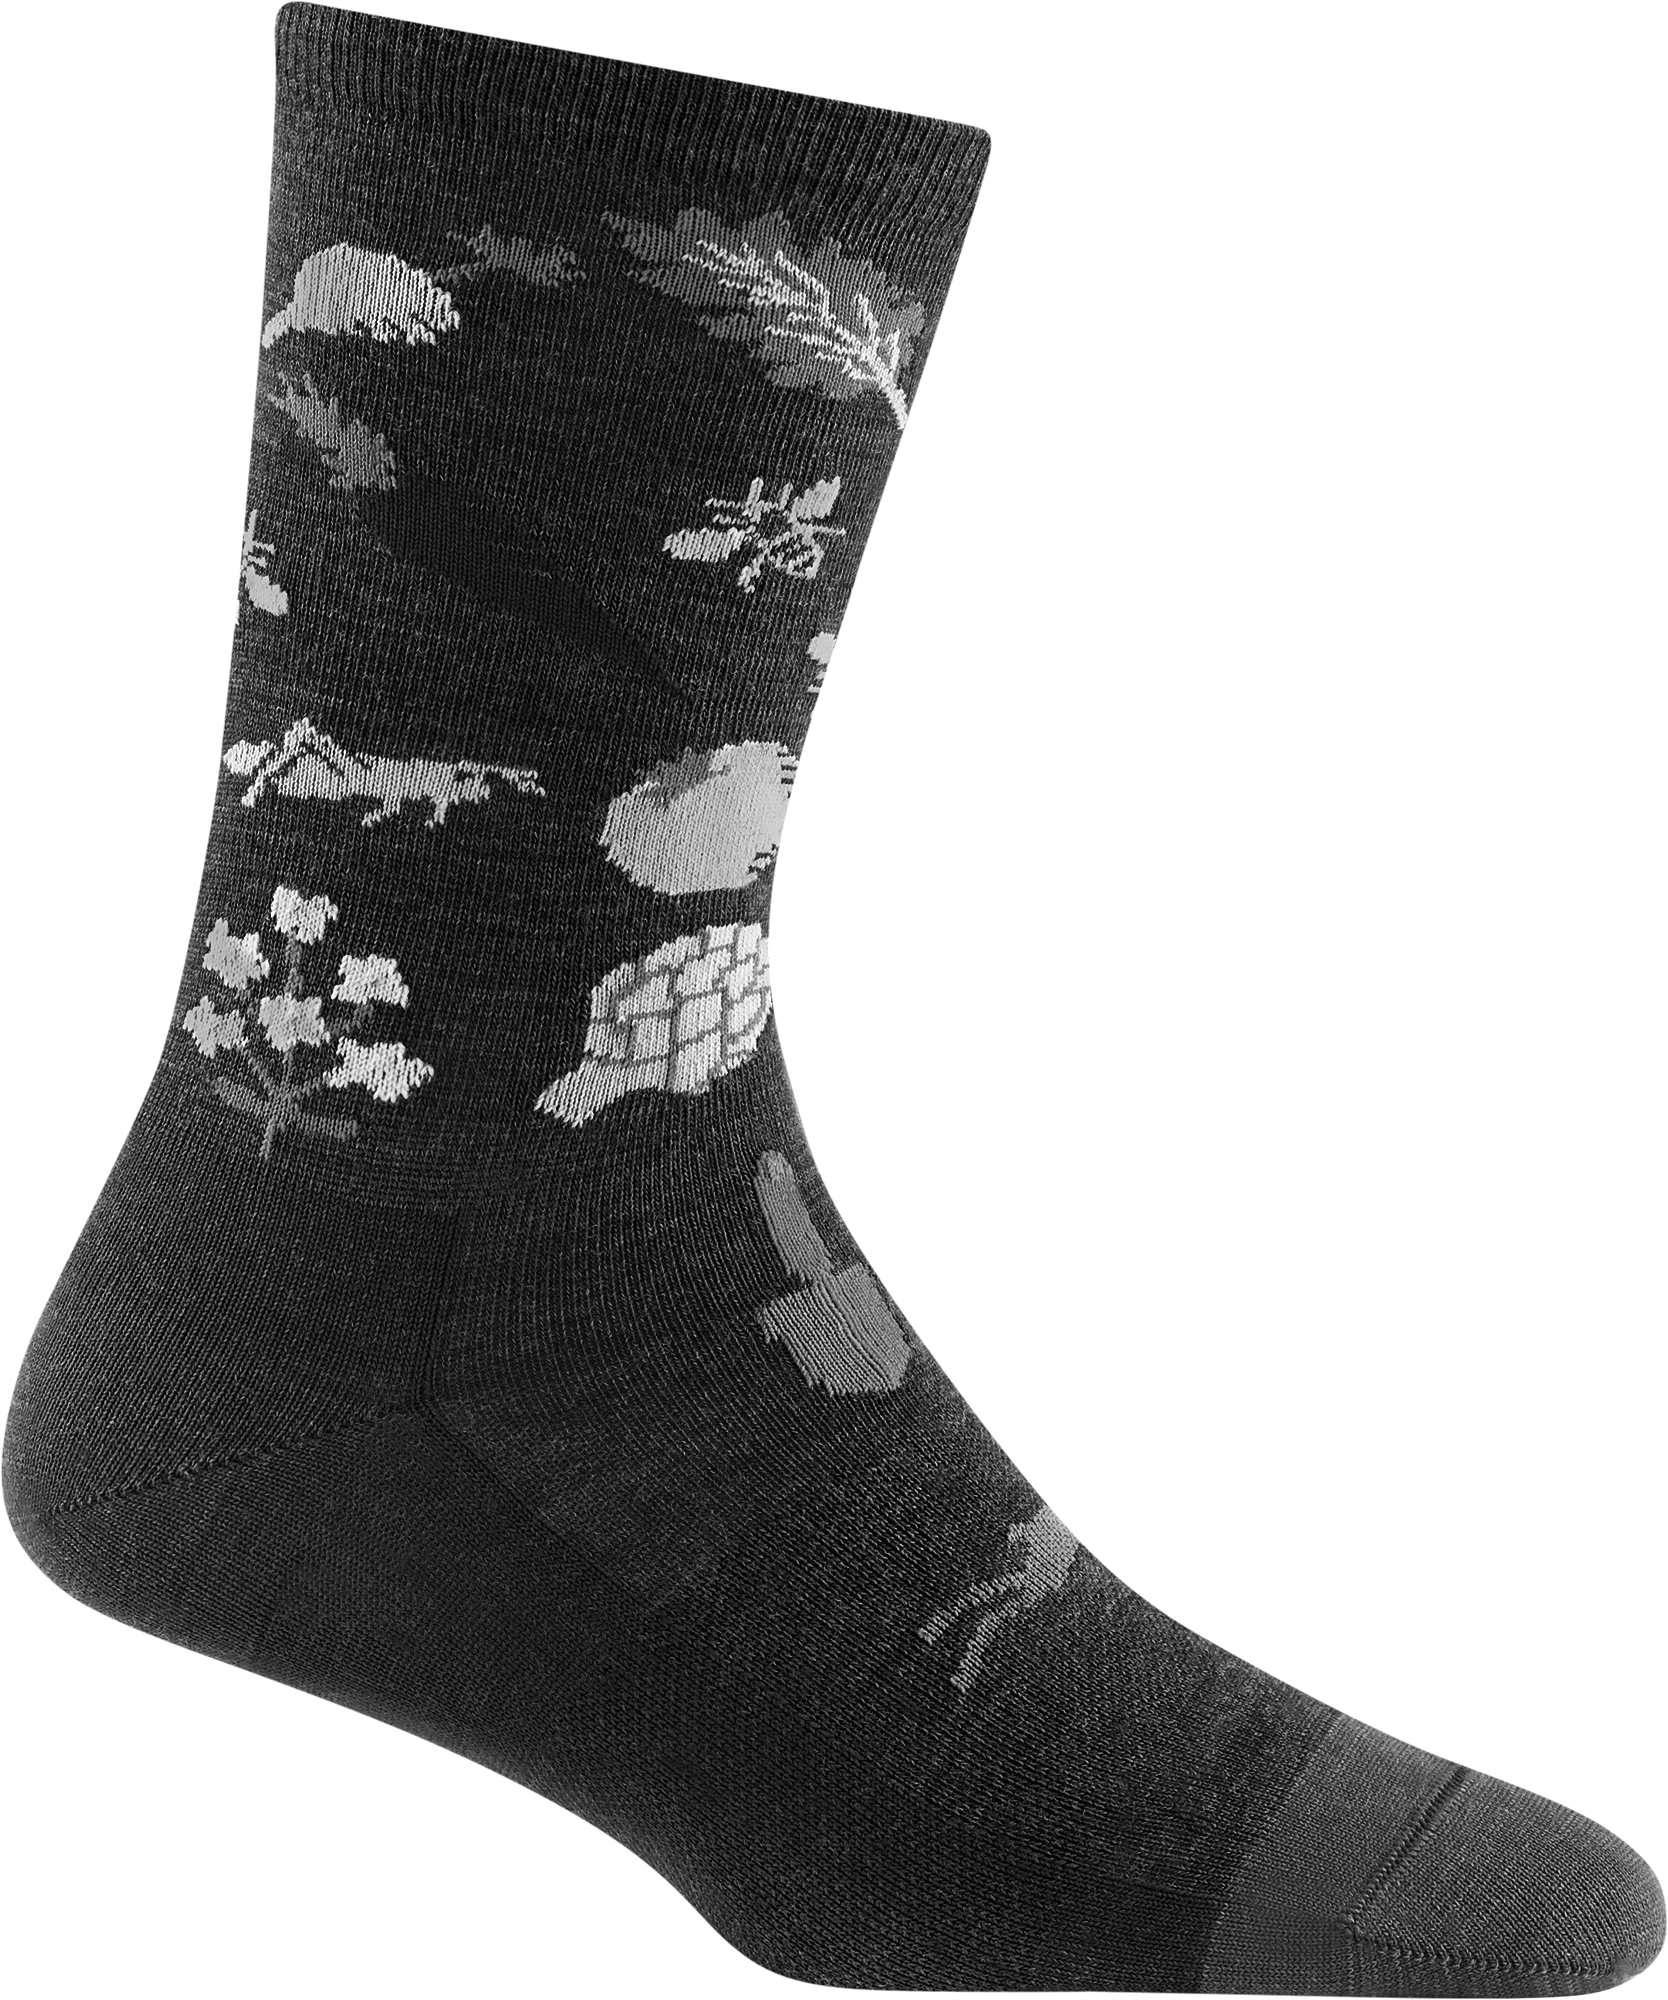 Cushion Location: Lifestyle socks with no cushion offer the standard feel for daily-use casual, and dress socks.. Cushion Weight: The lightweight yarns used in the Lifestyle category are designed for everyday use and feature a silky, low-profile feel.